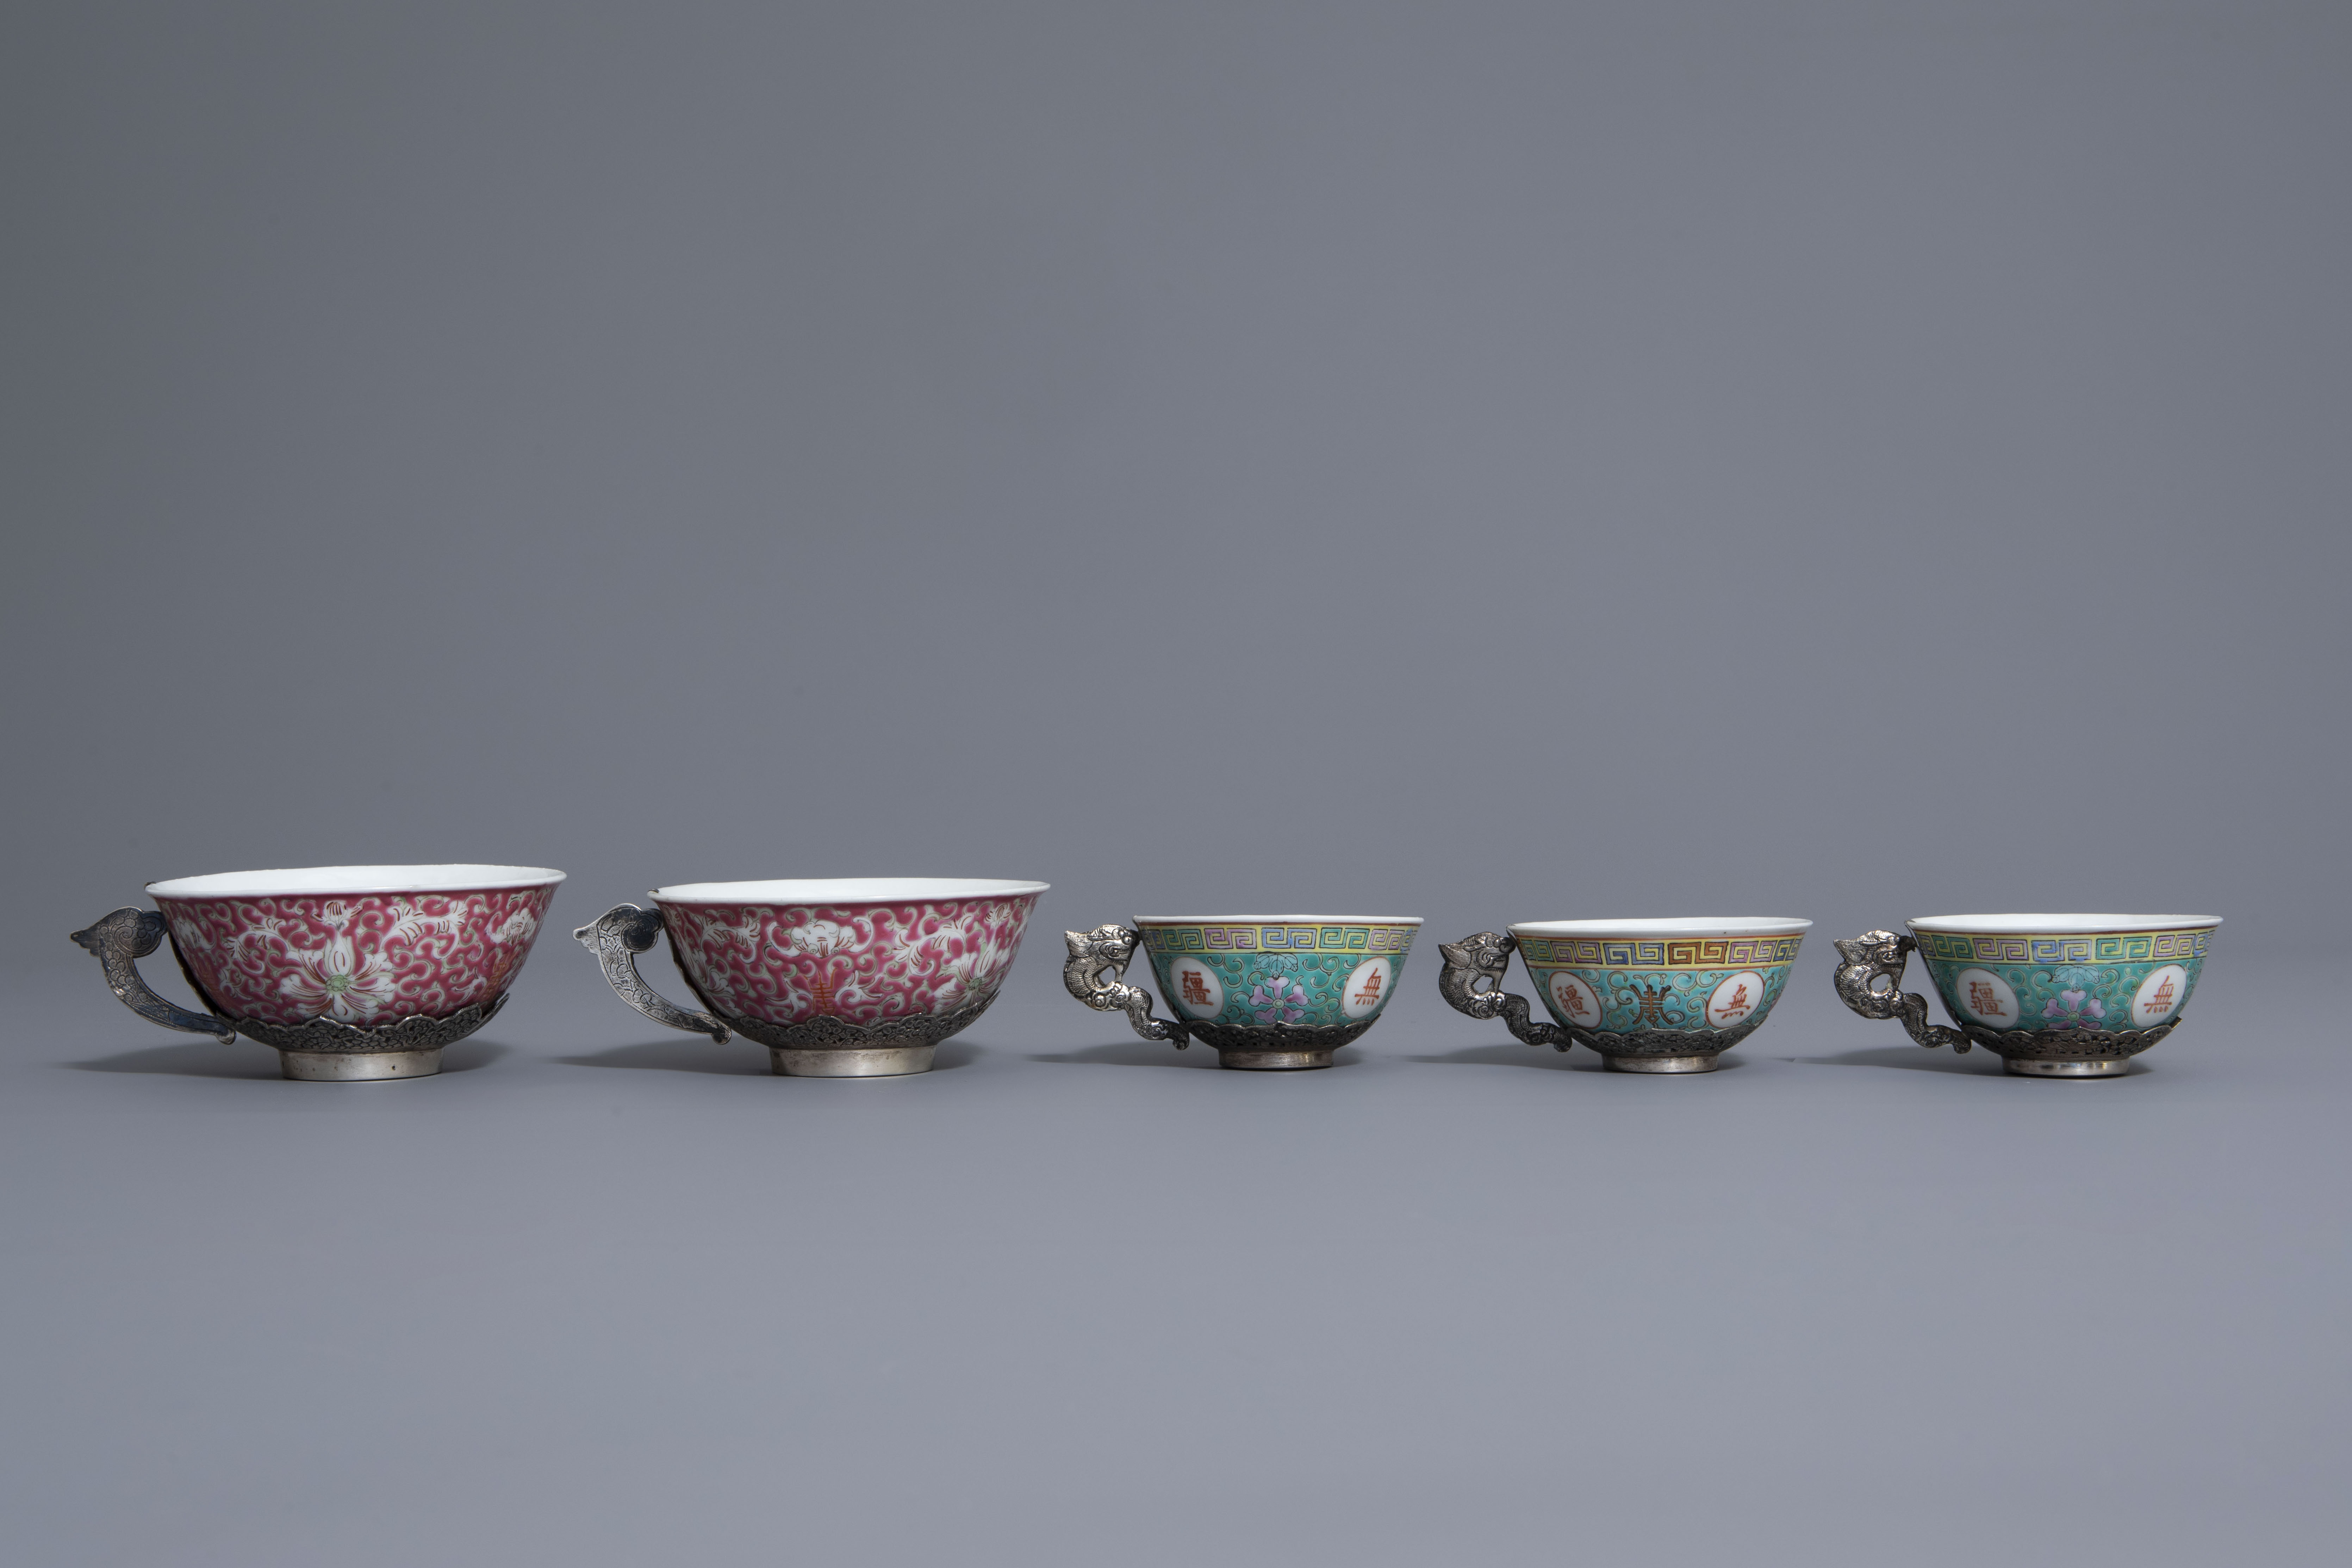 Five Chinese famille rose and silver cups and saucers and a bowl, 19th/20th C. - Image 4 of 17